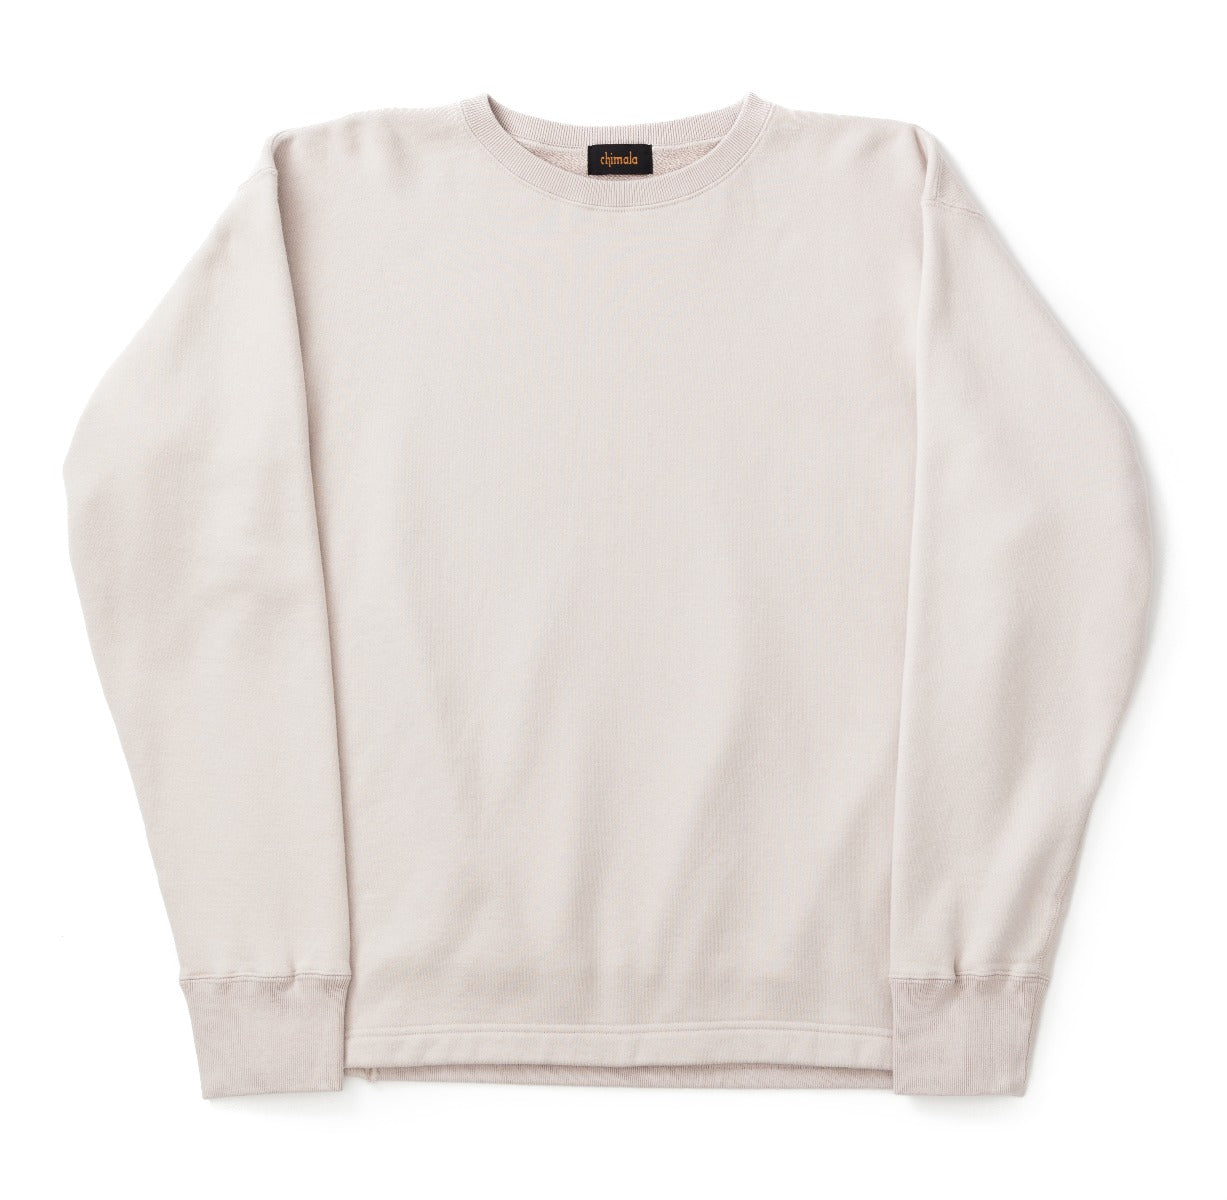 30/7 Fleece Sweat Shirt